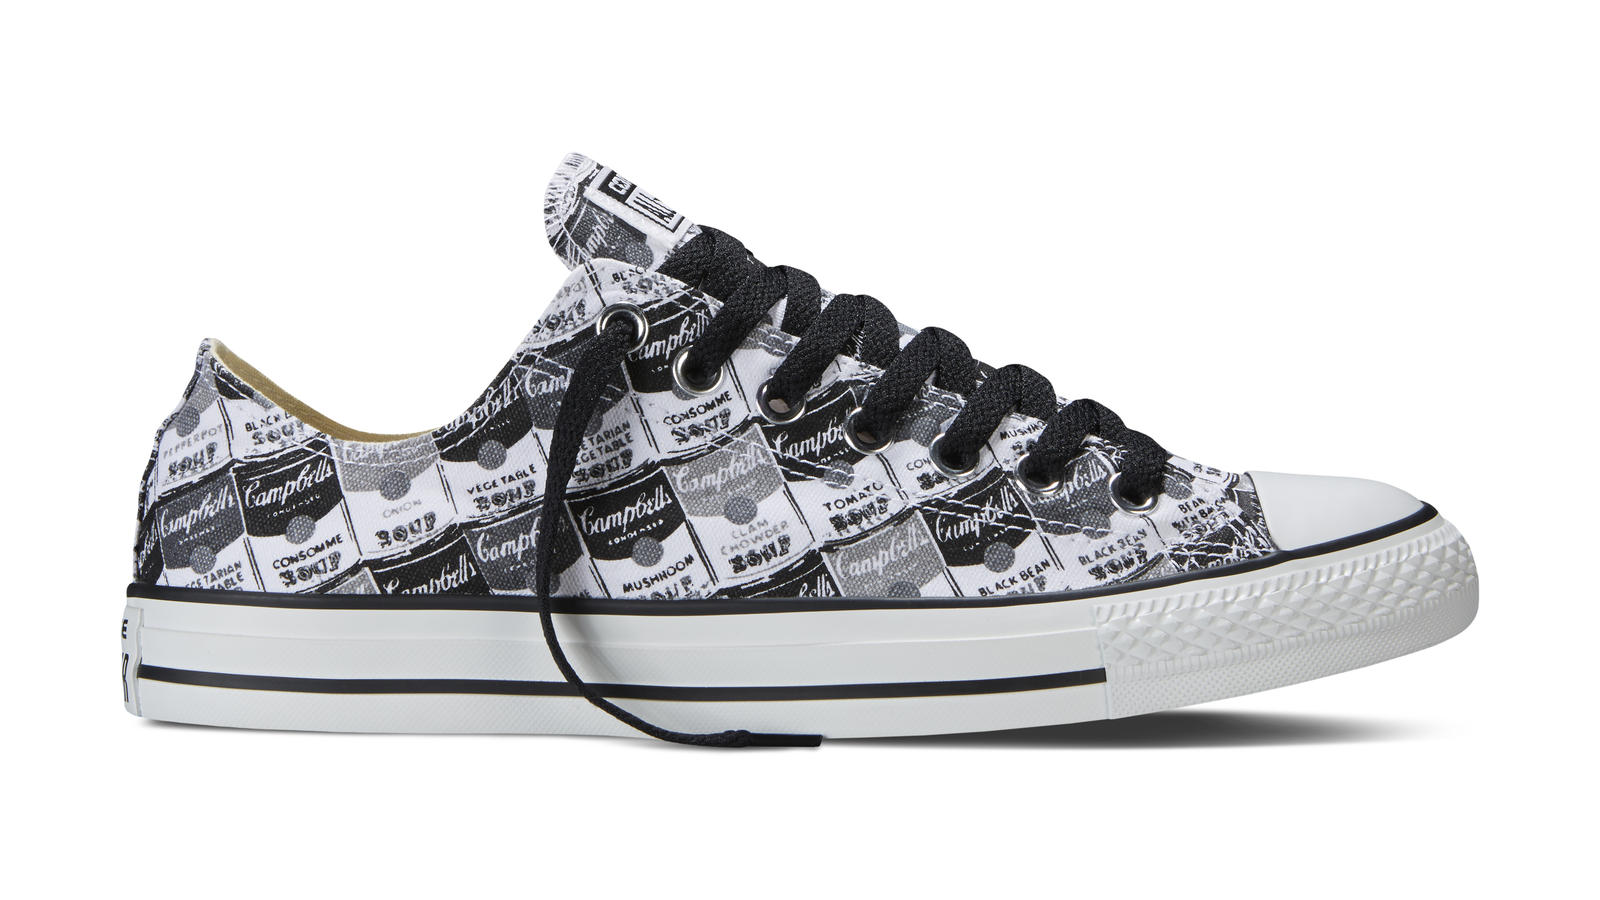 cc1c110cb235 Converse Chuck Taylor All Star Andy Warhol Black And White Original